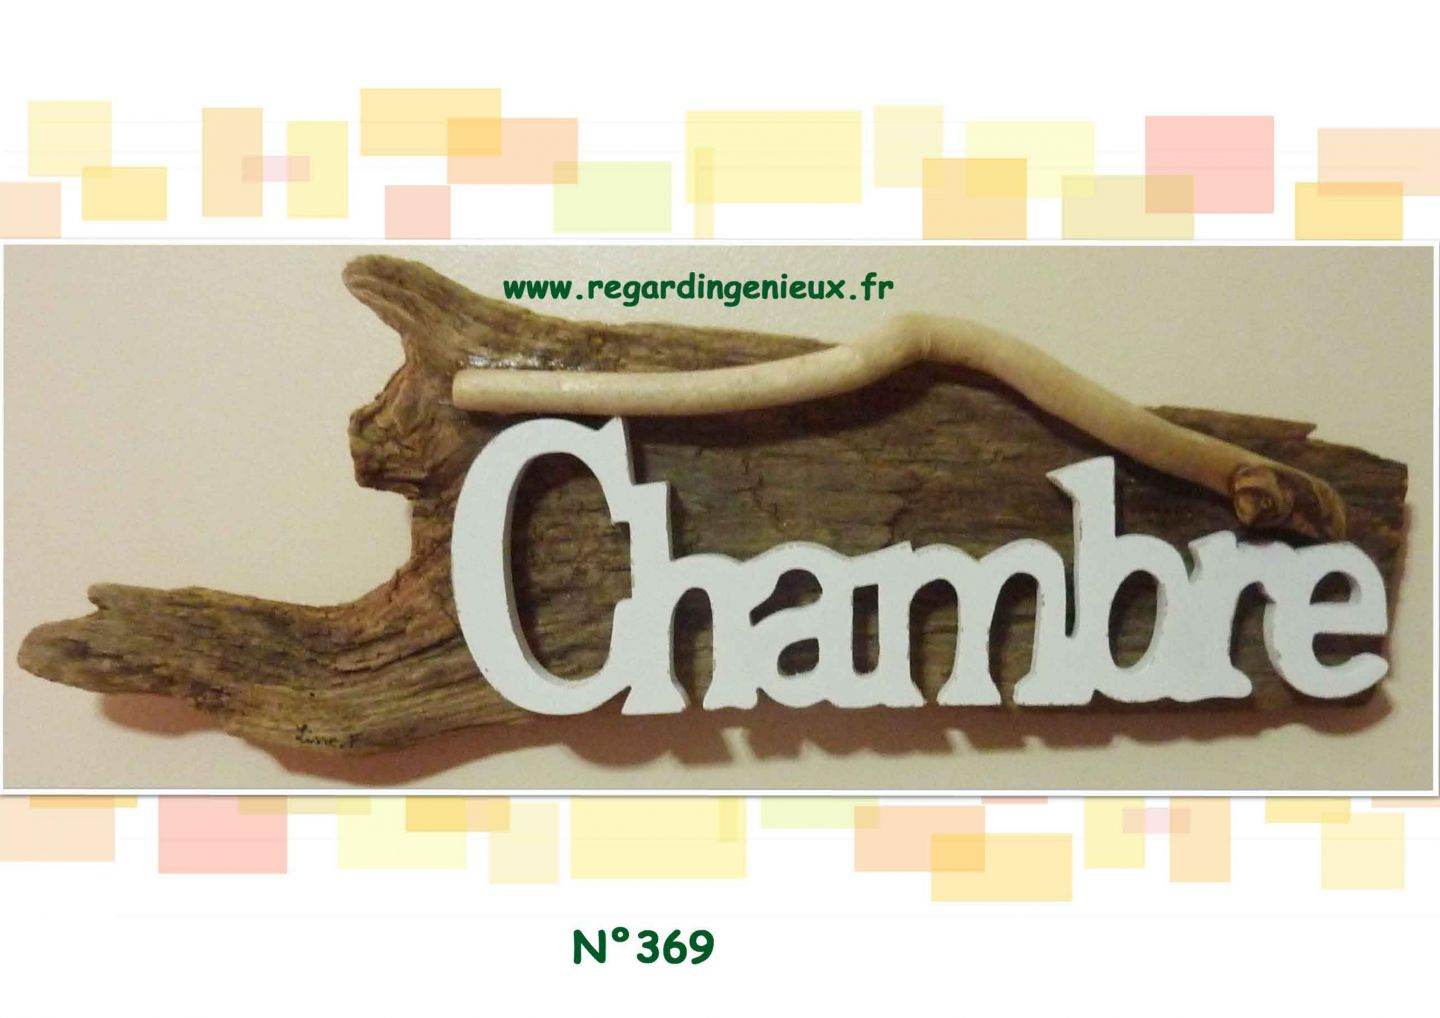 PLAQUE PHOTO/PLAQUE DE PORTE - creation de déco en bois flotté